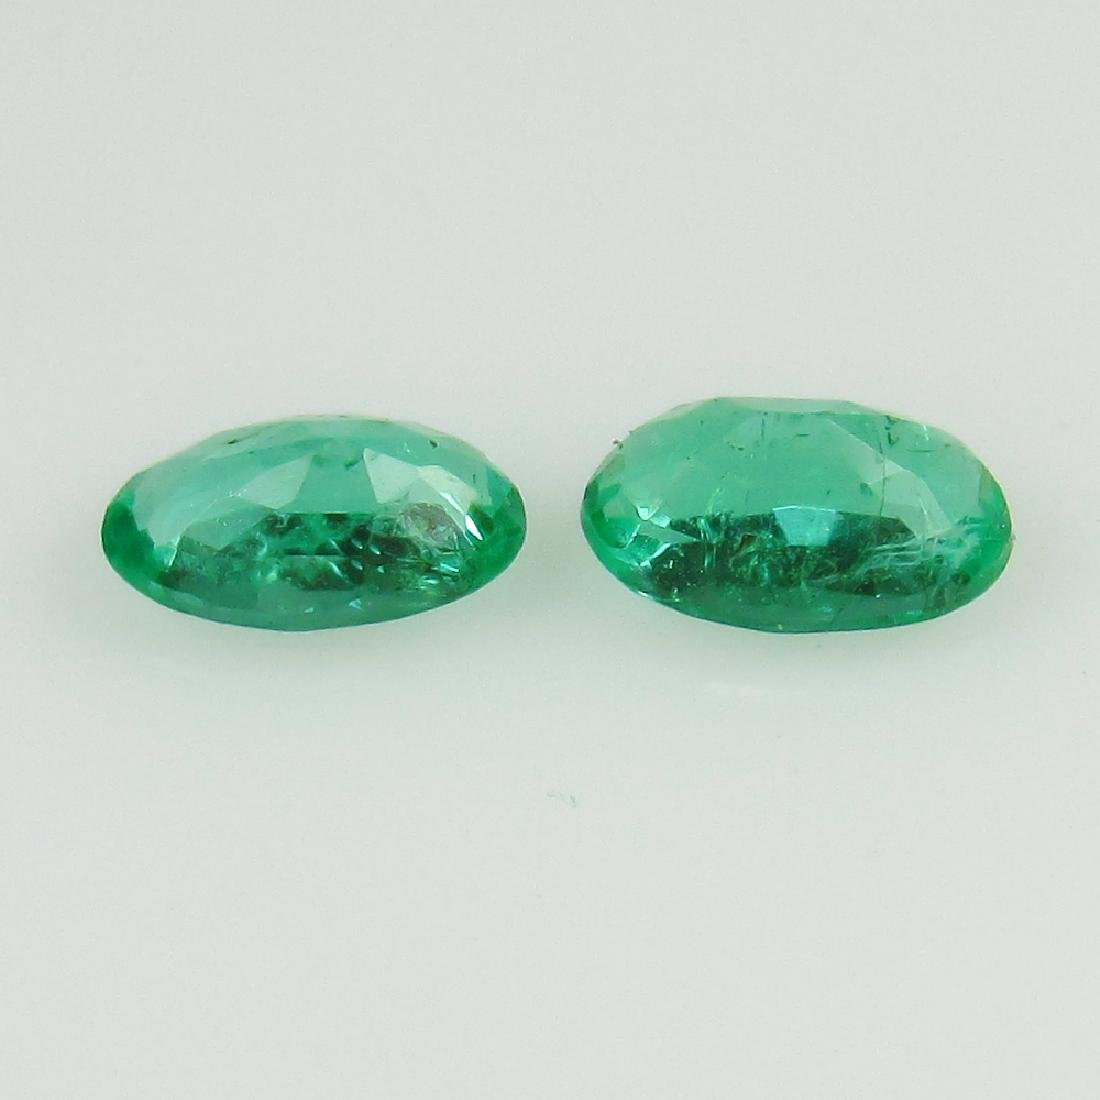 0.43 Ct Genuine Loose Zambian Emerald 5X3 mm Oval Pair - 2